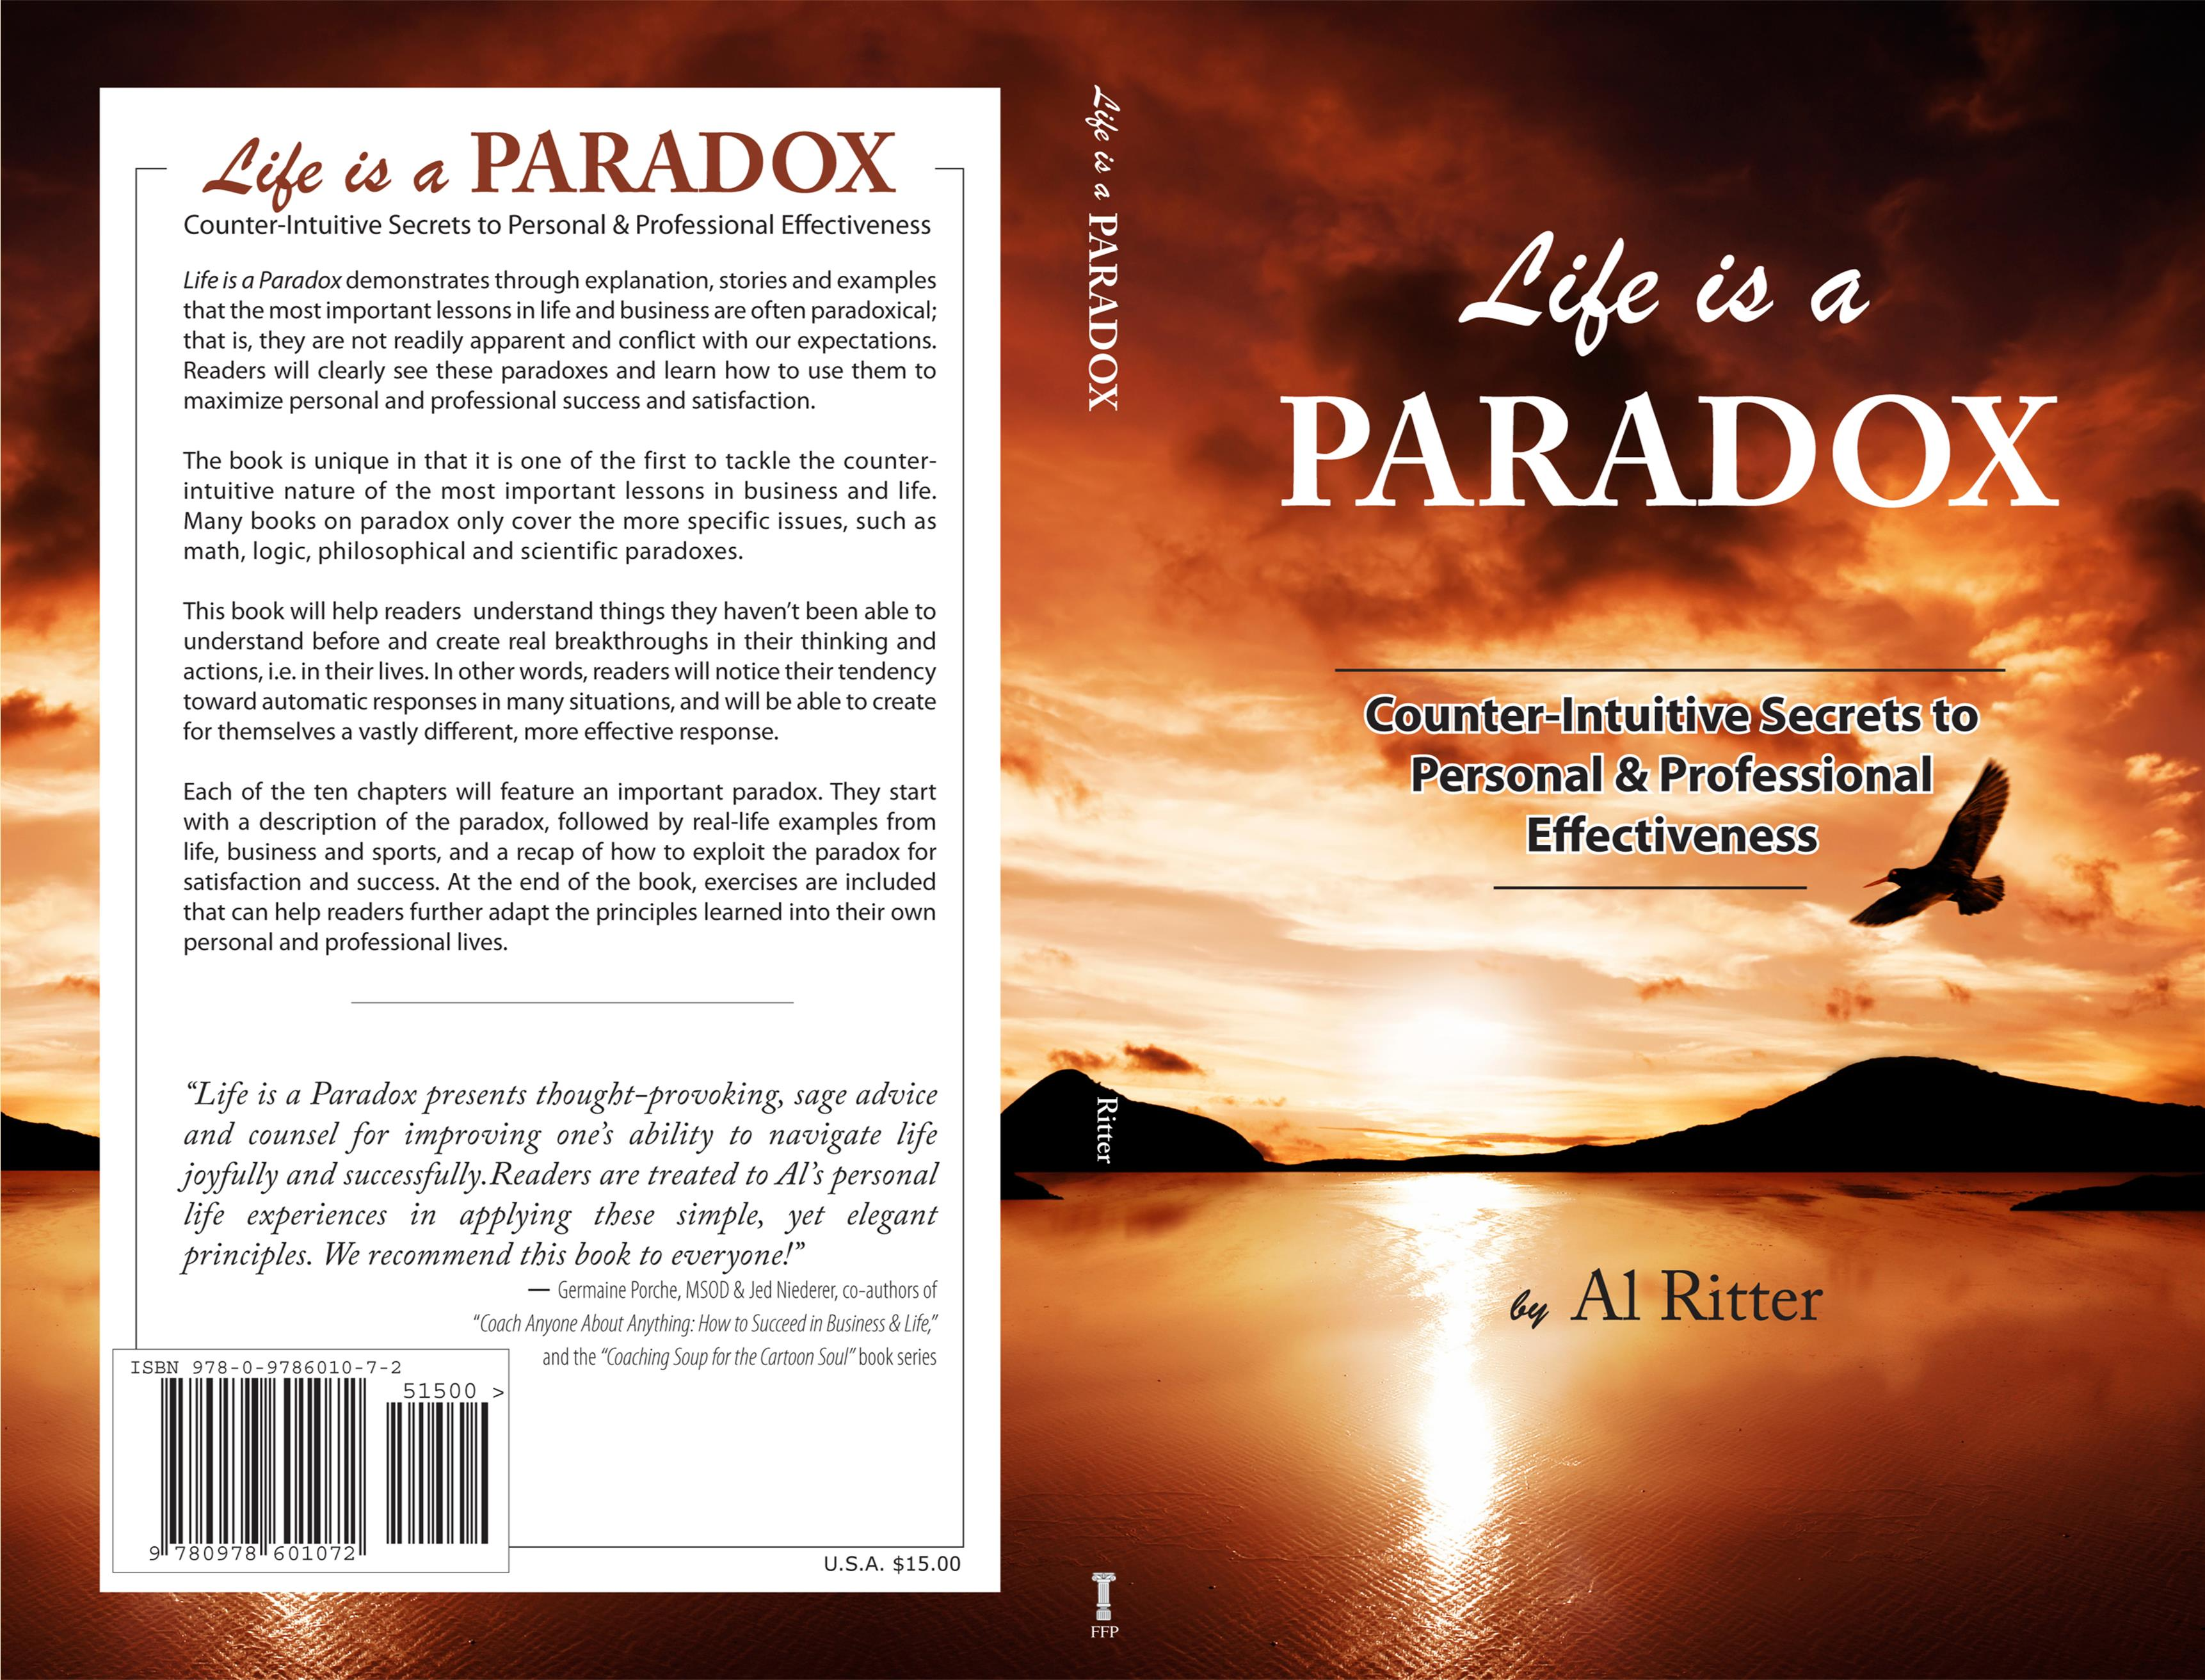 Life is a Paradox cover image